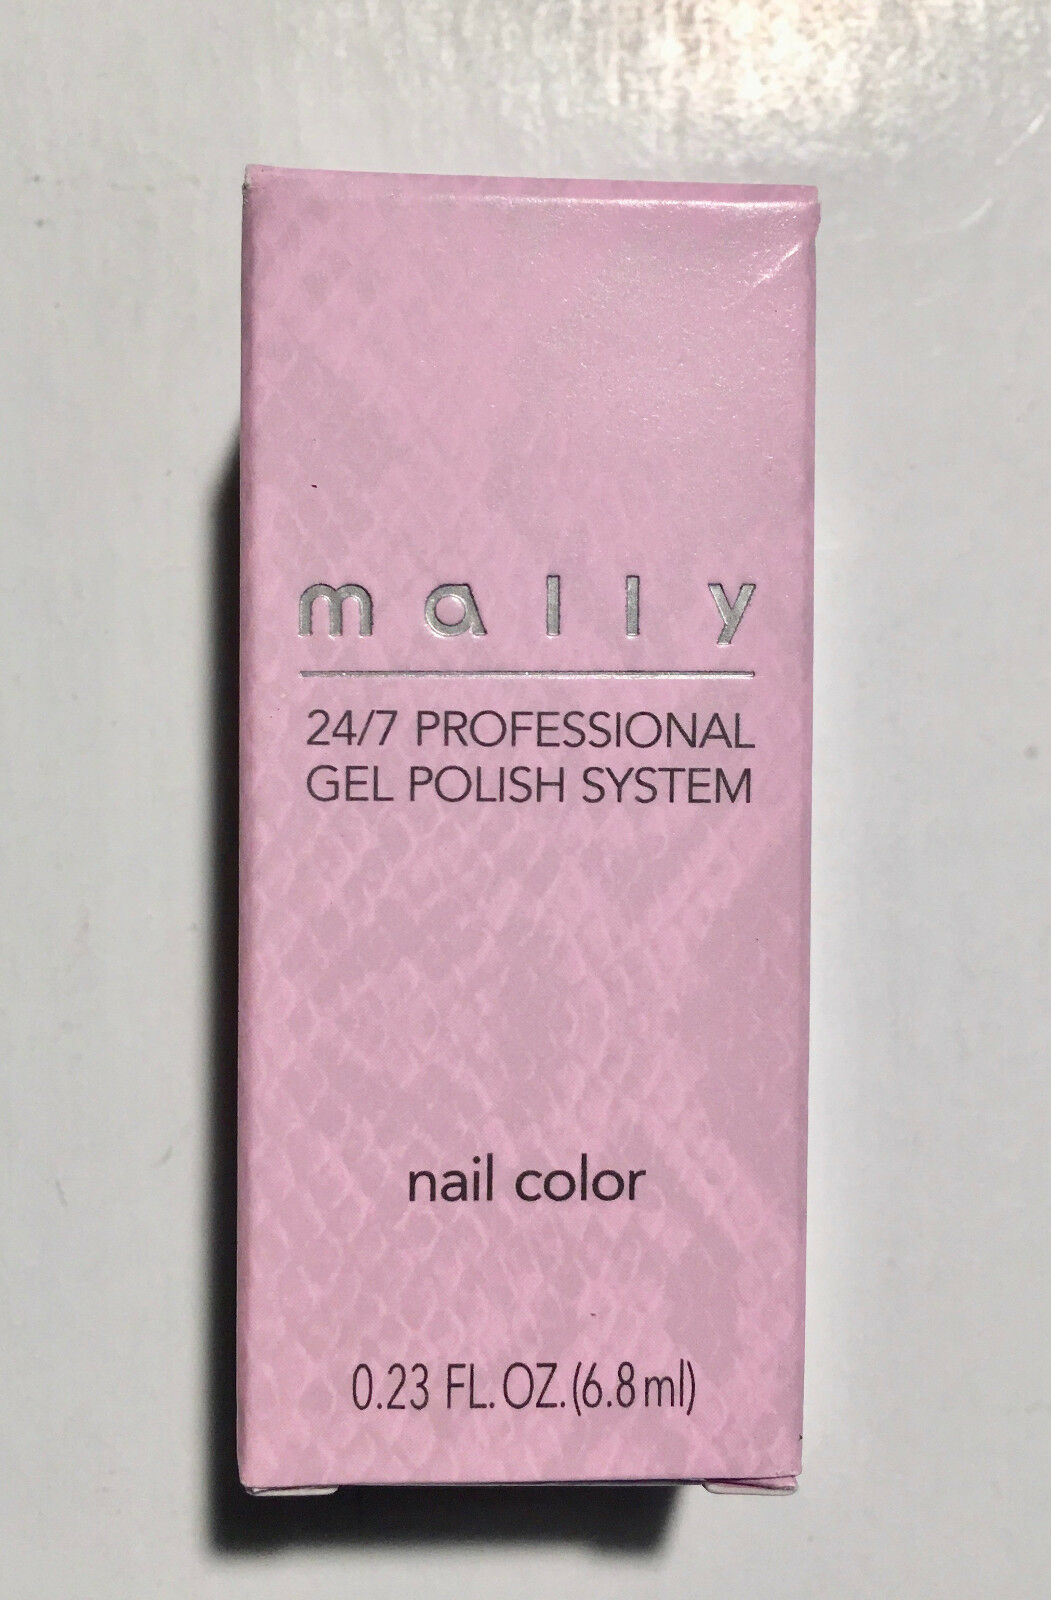 Mally 24/7 Pro GEL Polish Nail Color Like a Virgin Neutral Beige ...